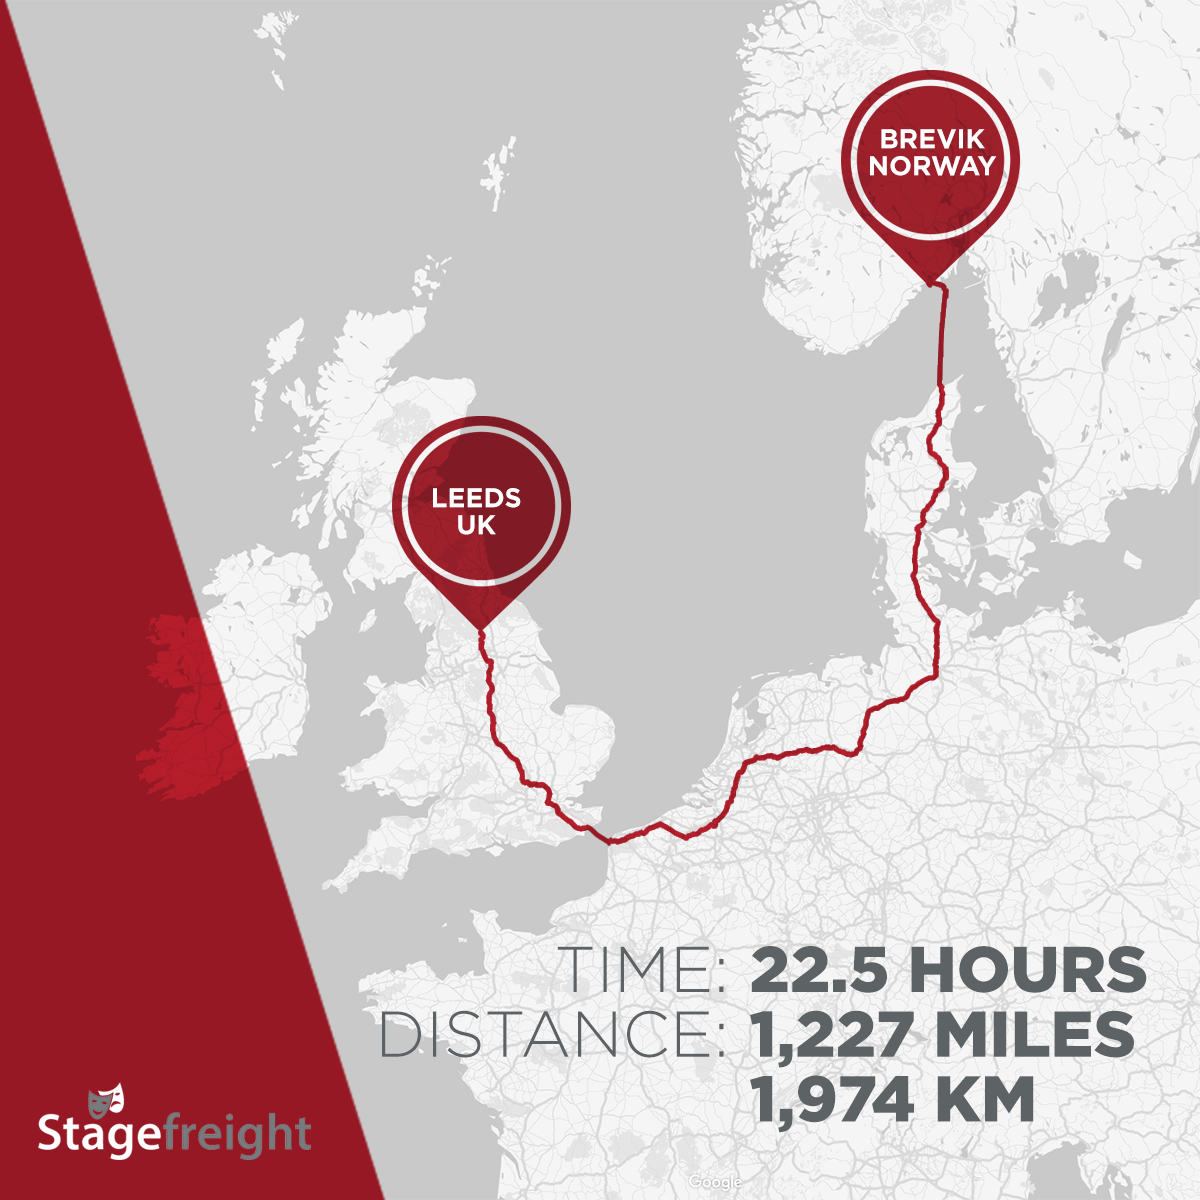 Brevik event truck route Stagefreight